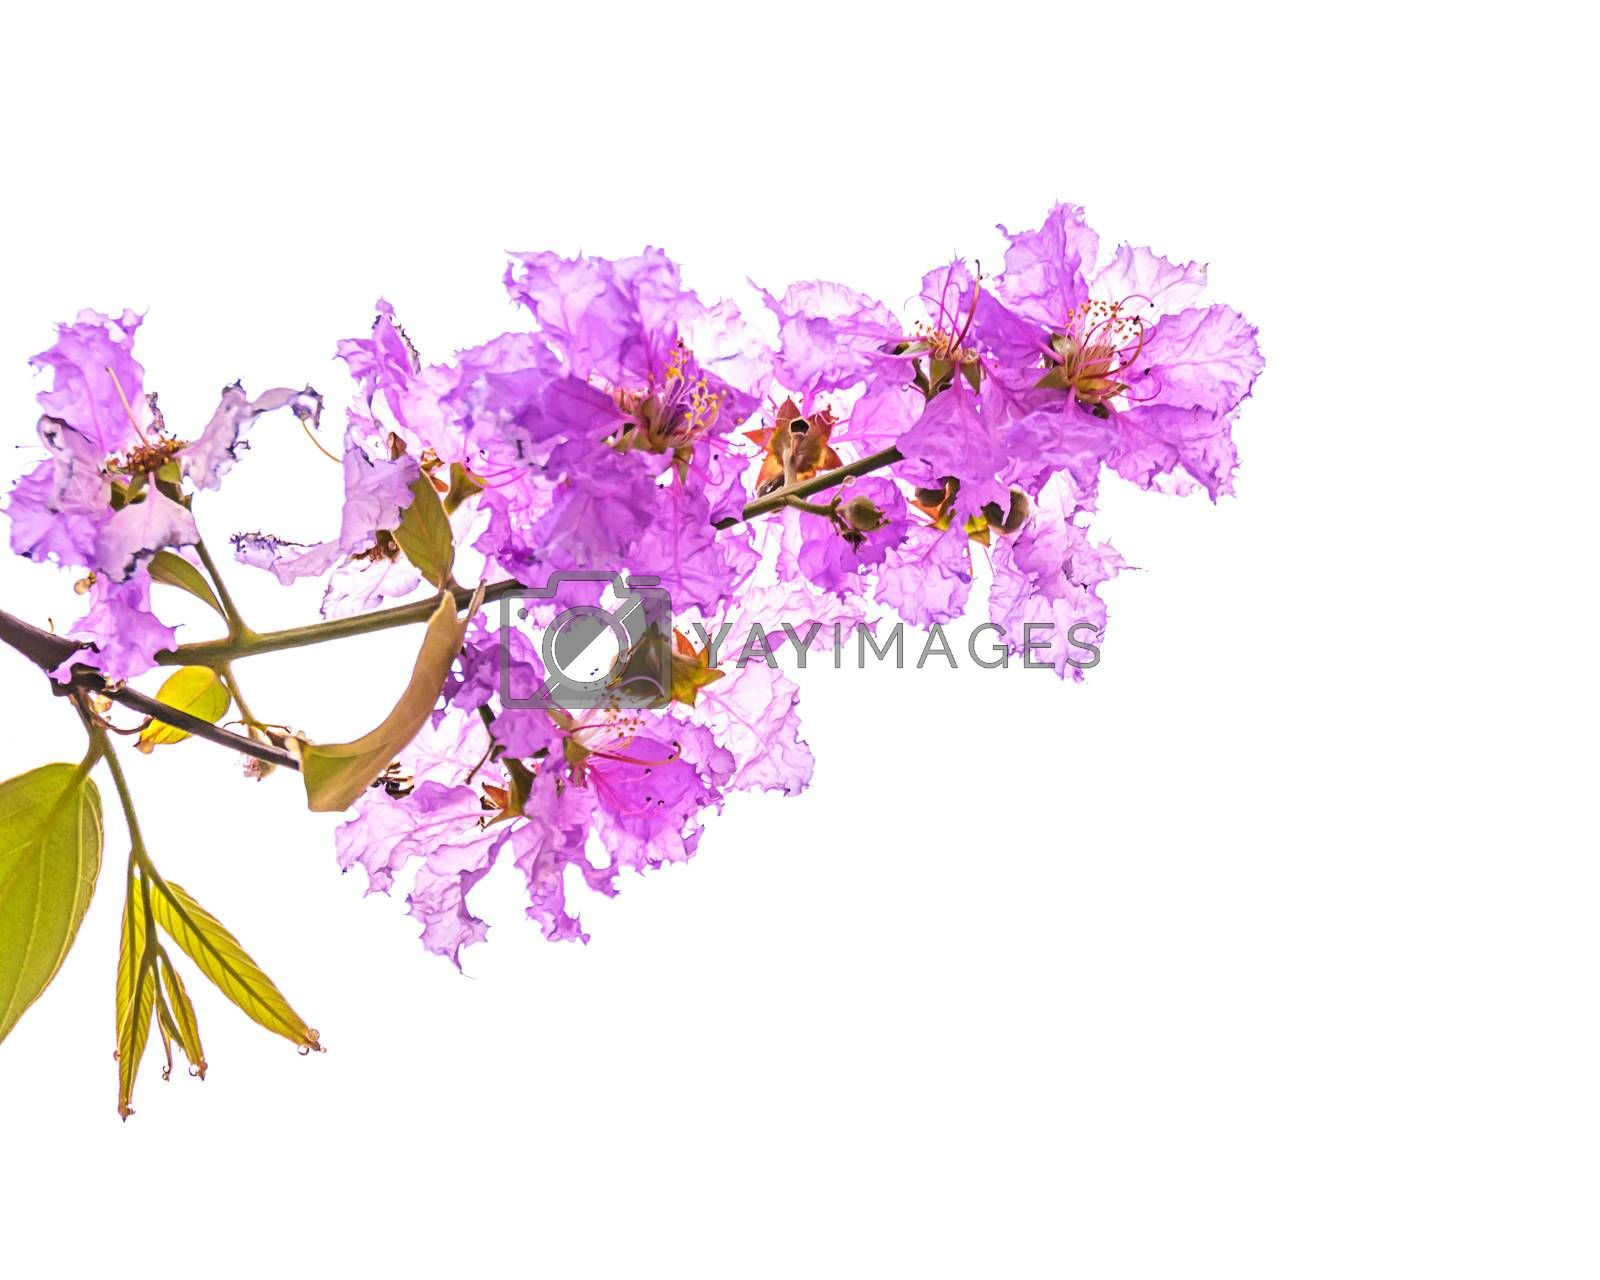 Royalty free image of Inthanin flowers by NuwatPhoto